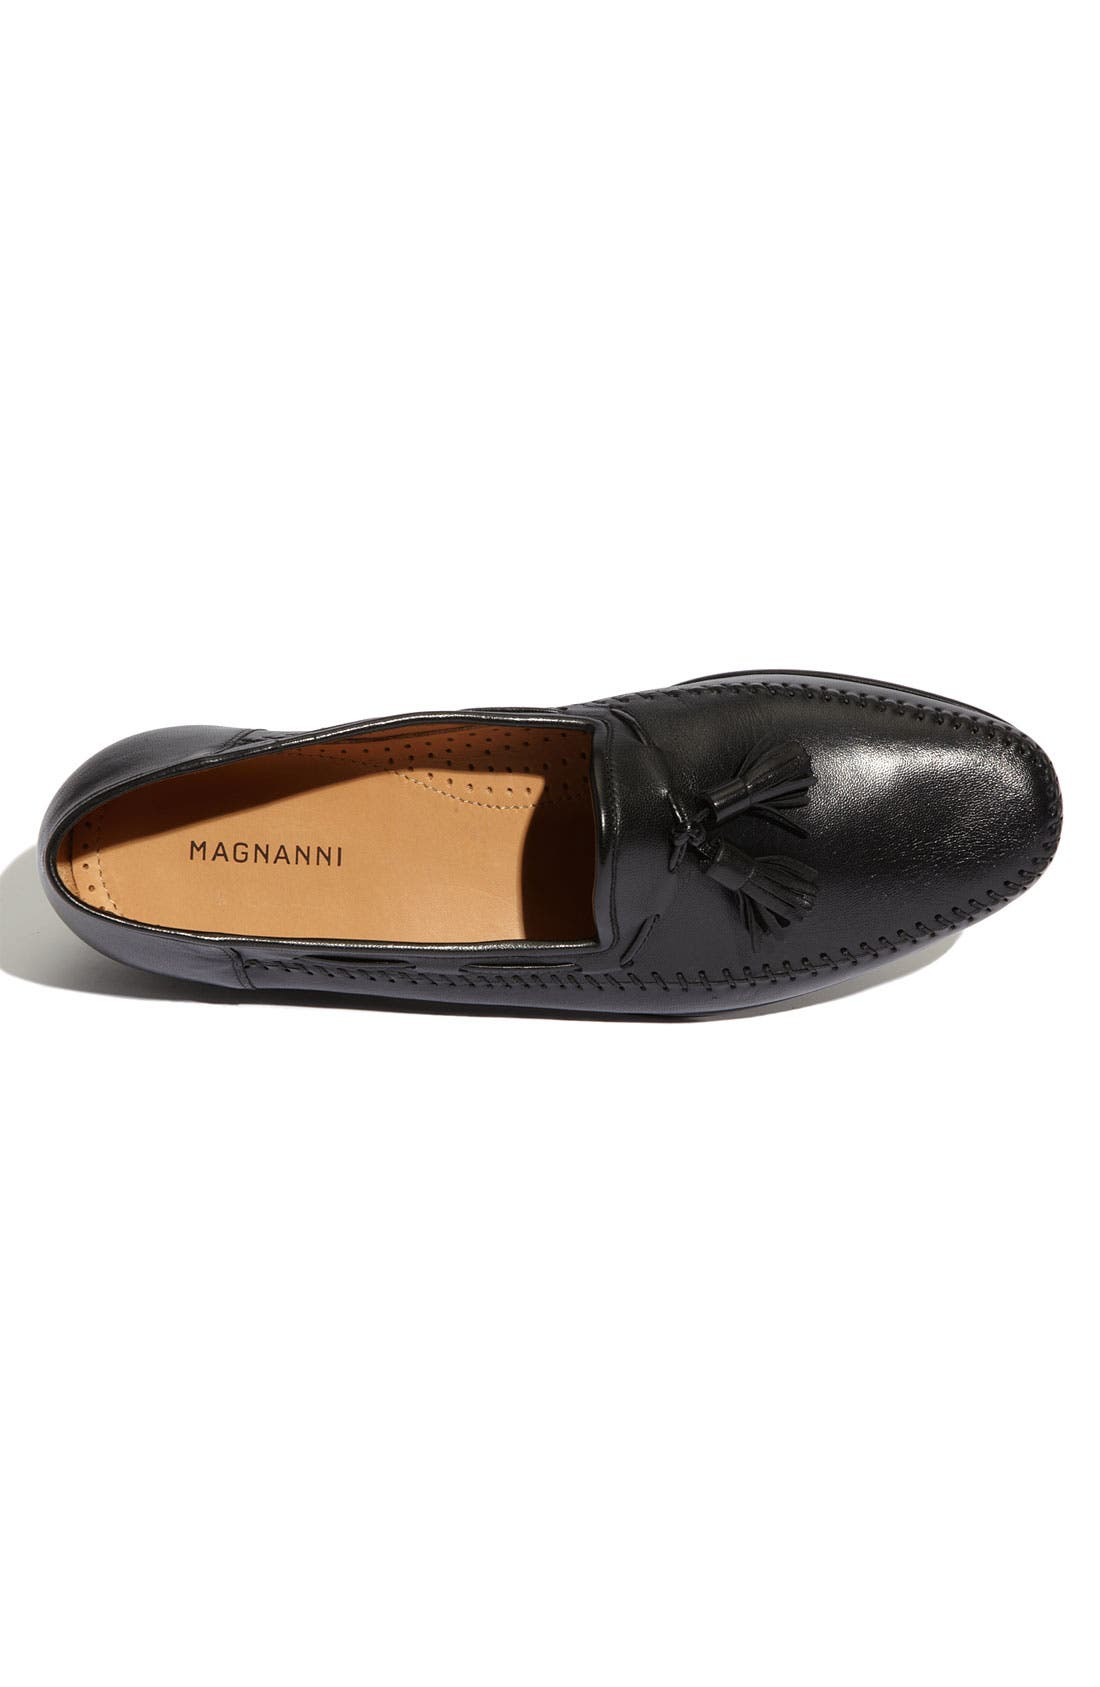 Alternate Image 3  - Magnanni 'Ancona' Loafer